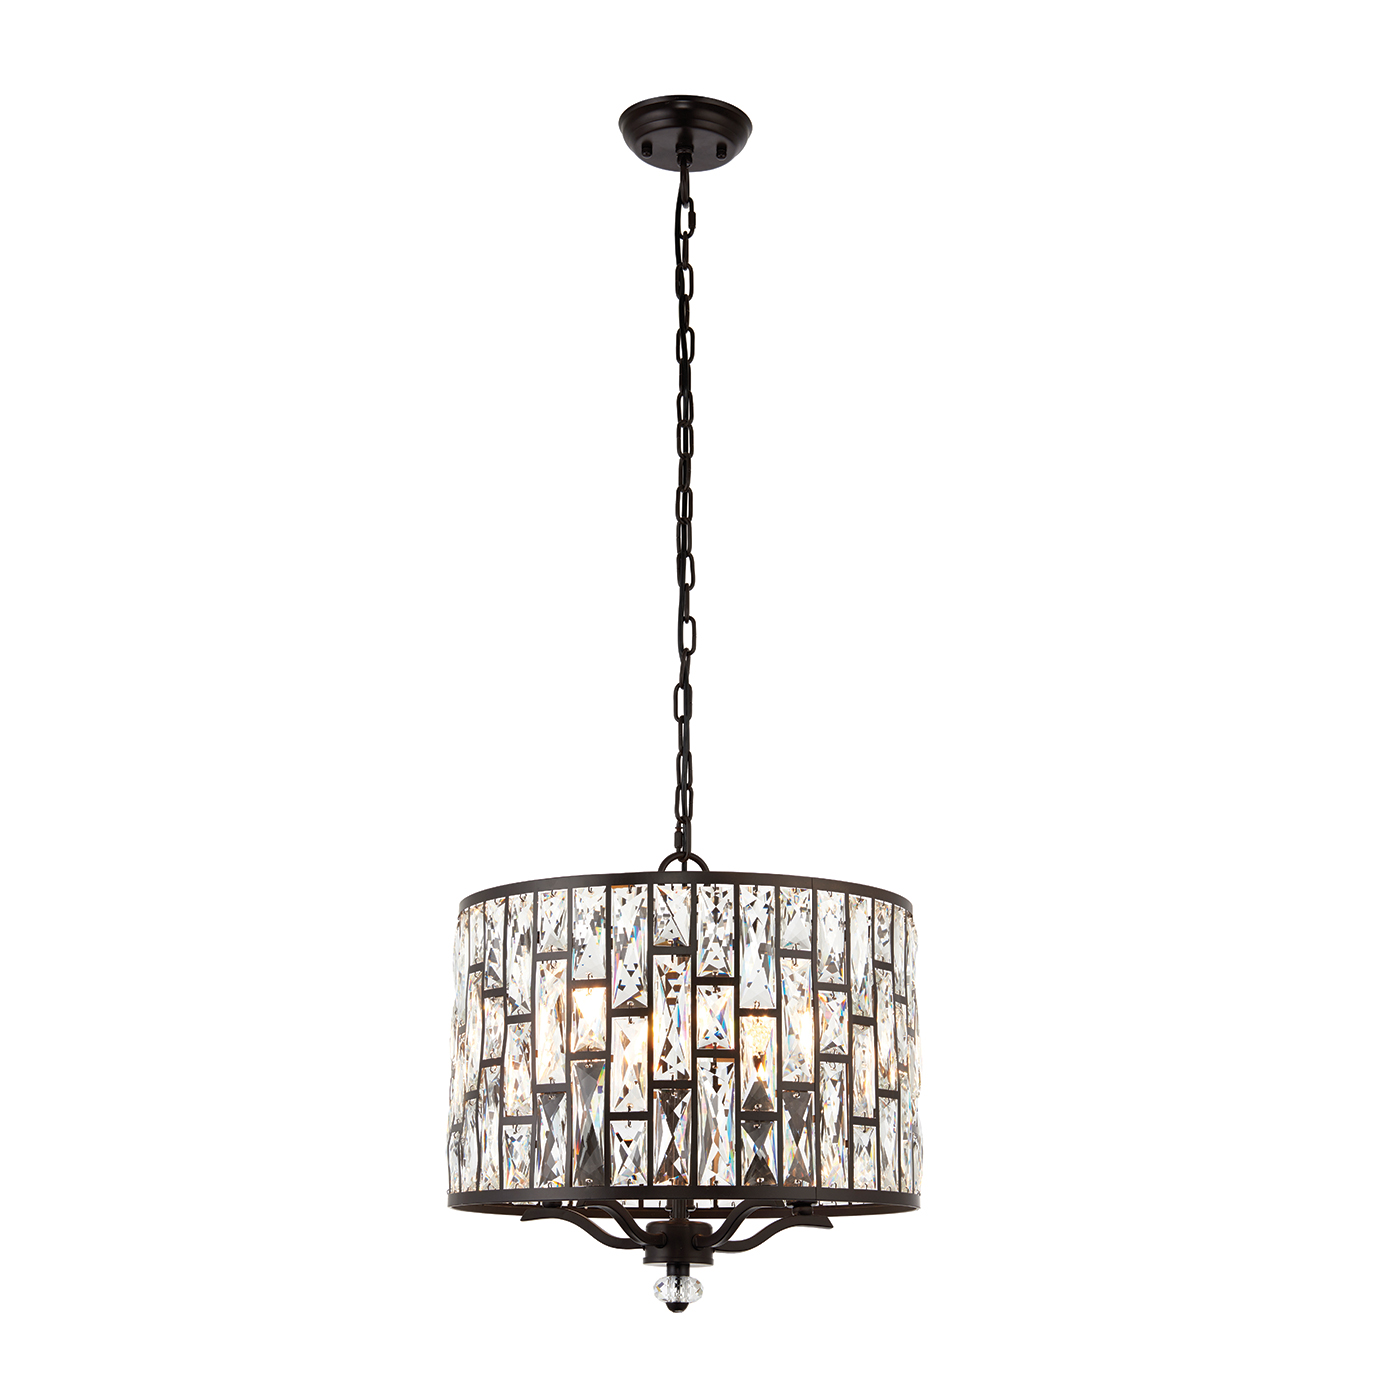 Endon Belle pendant 5x 40W Dark bronze effect plate & clear crystal Thumbnail 1